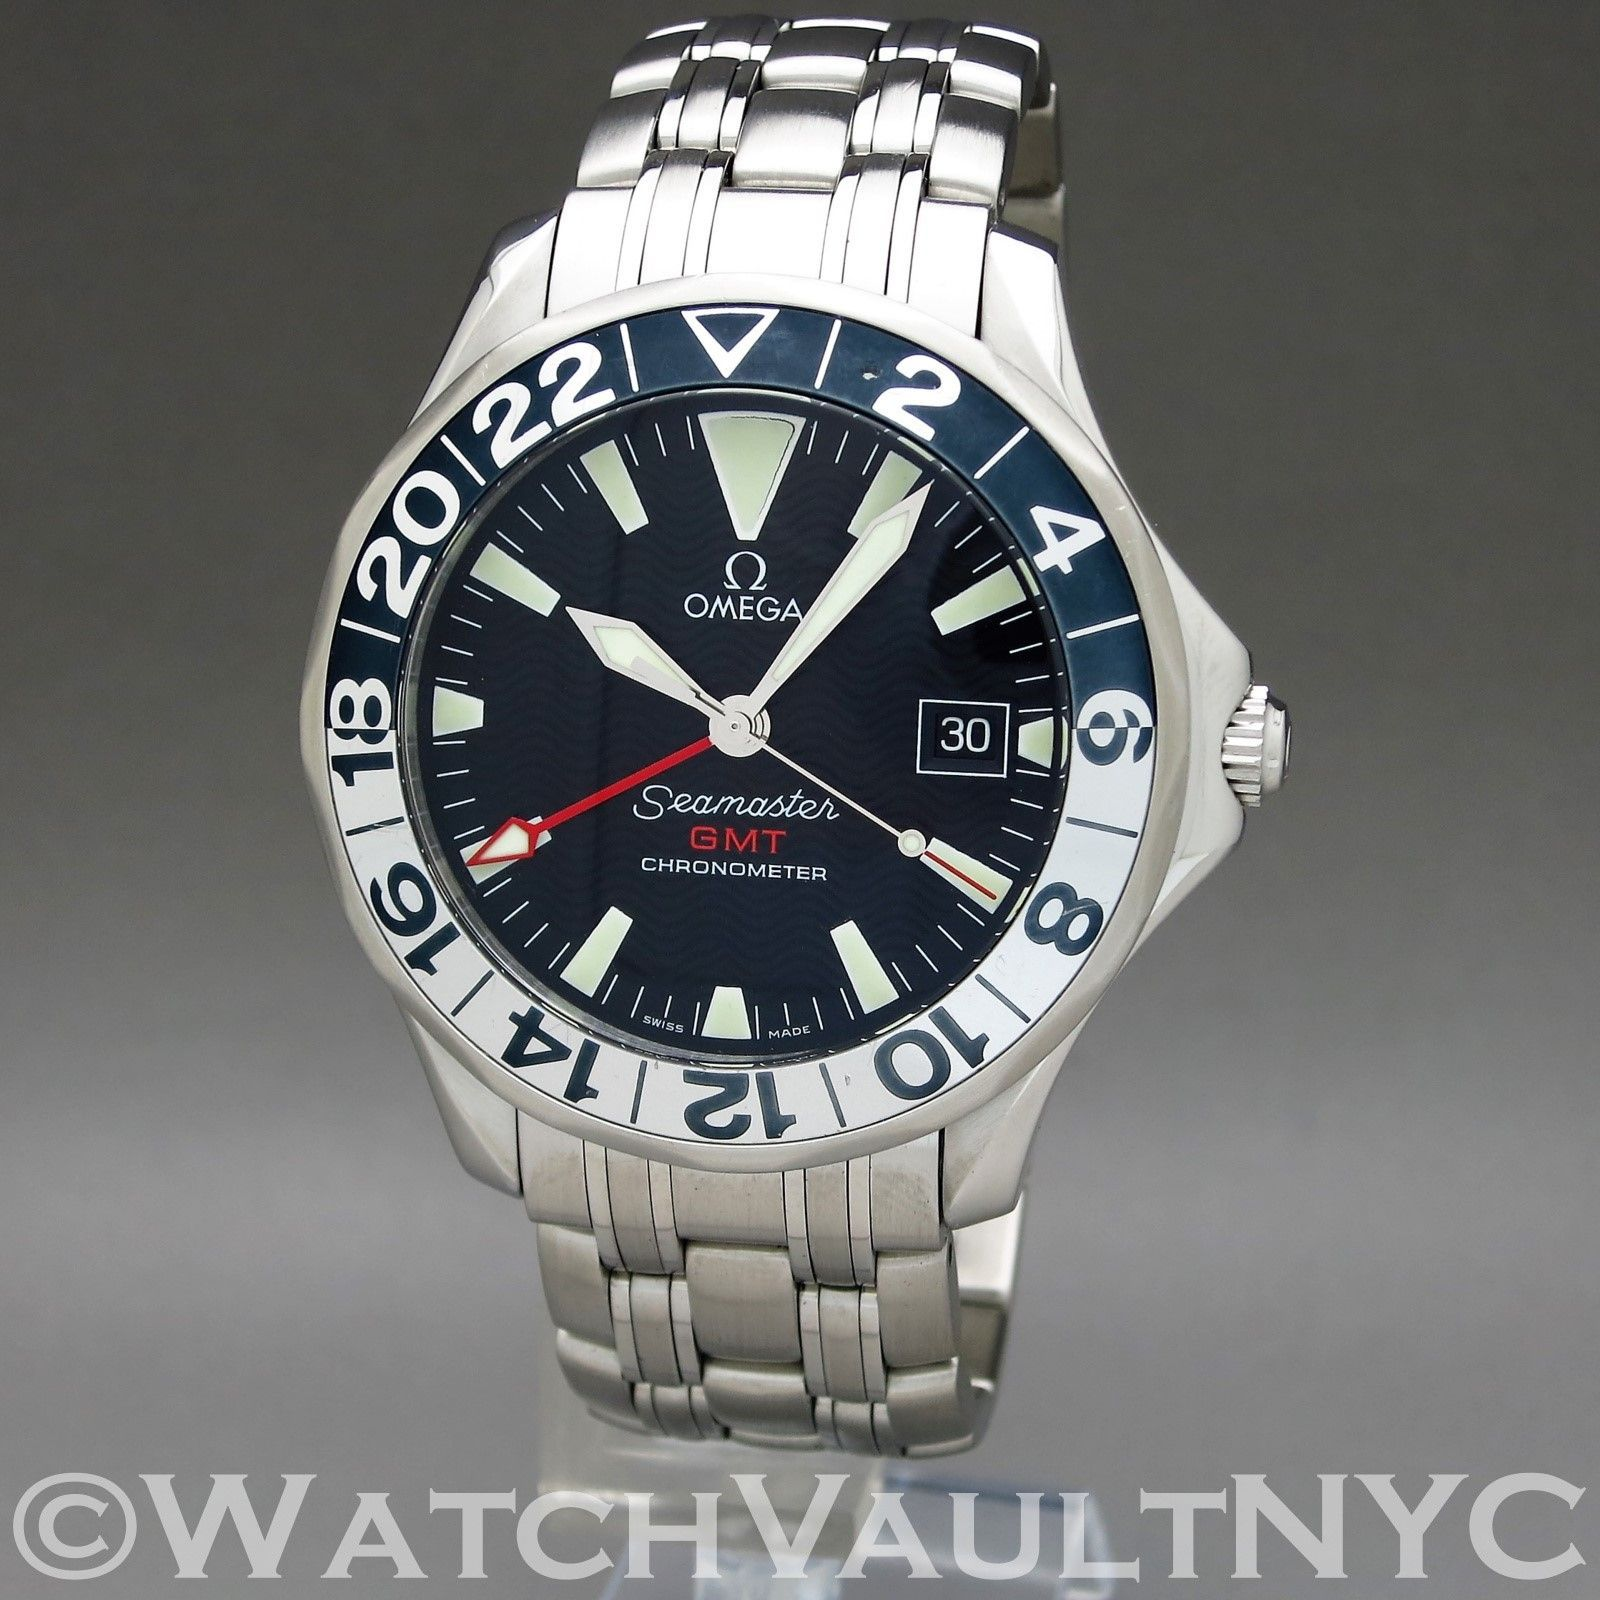 Omega Seamaster Professional 300m Gmt 50th Anniversary 2534 Omega Omega Seamaster Quartz Omega Watches Seamaster